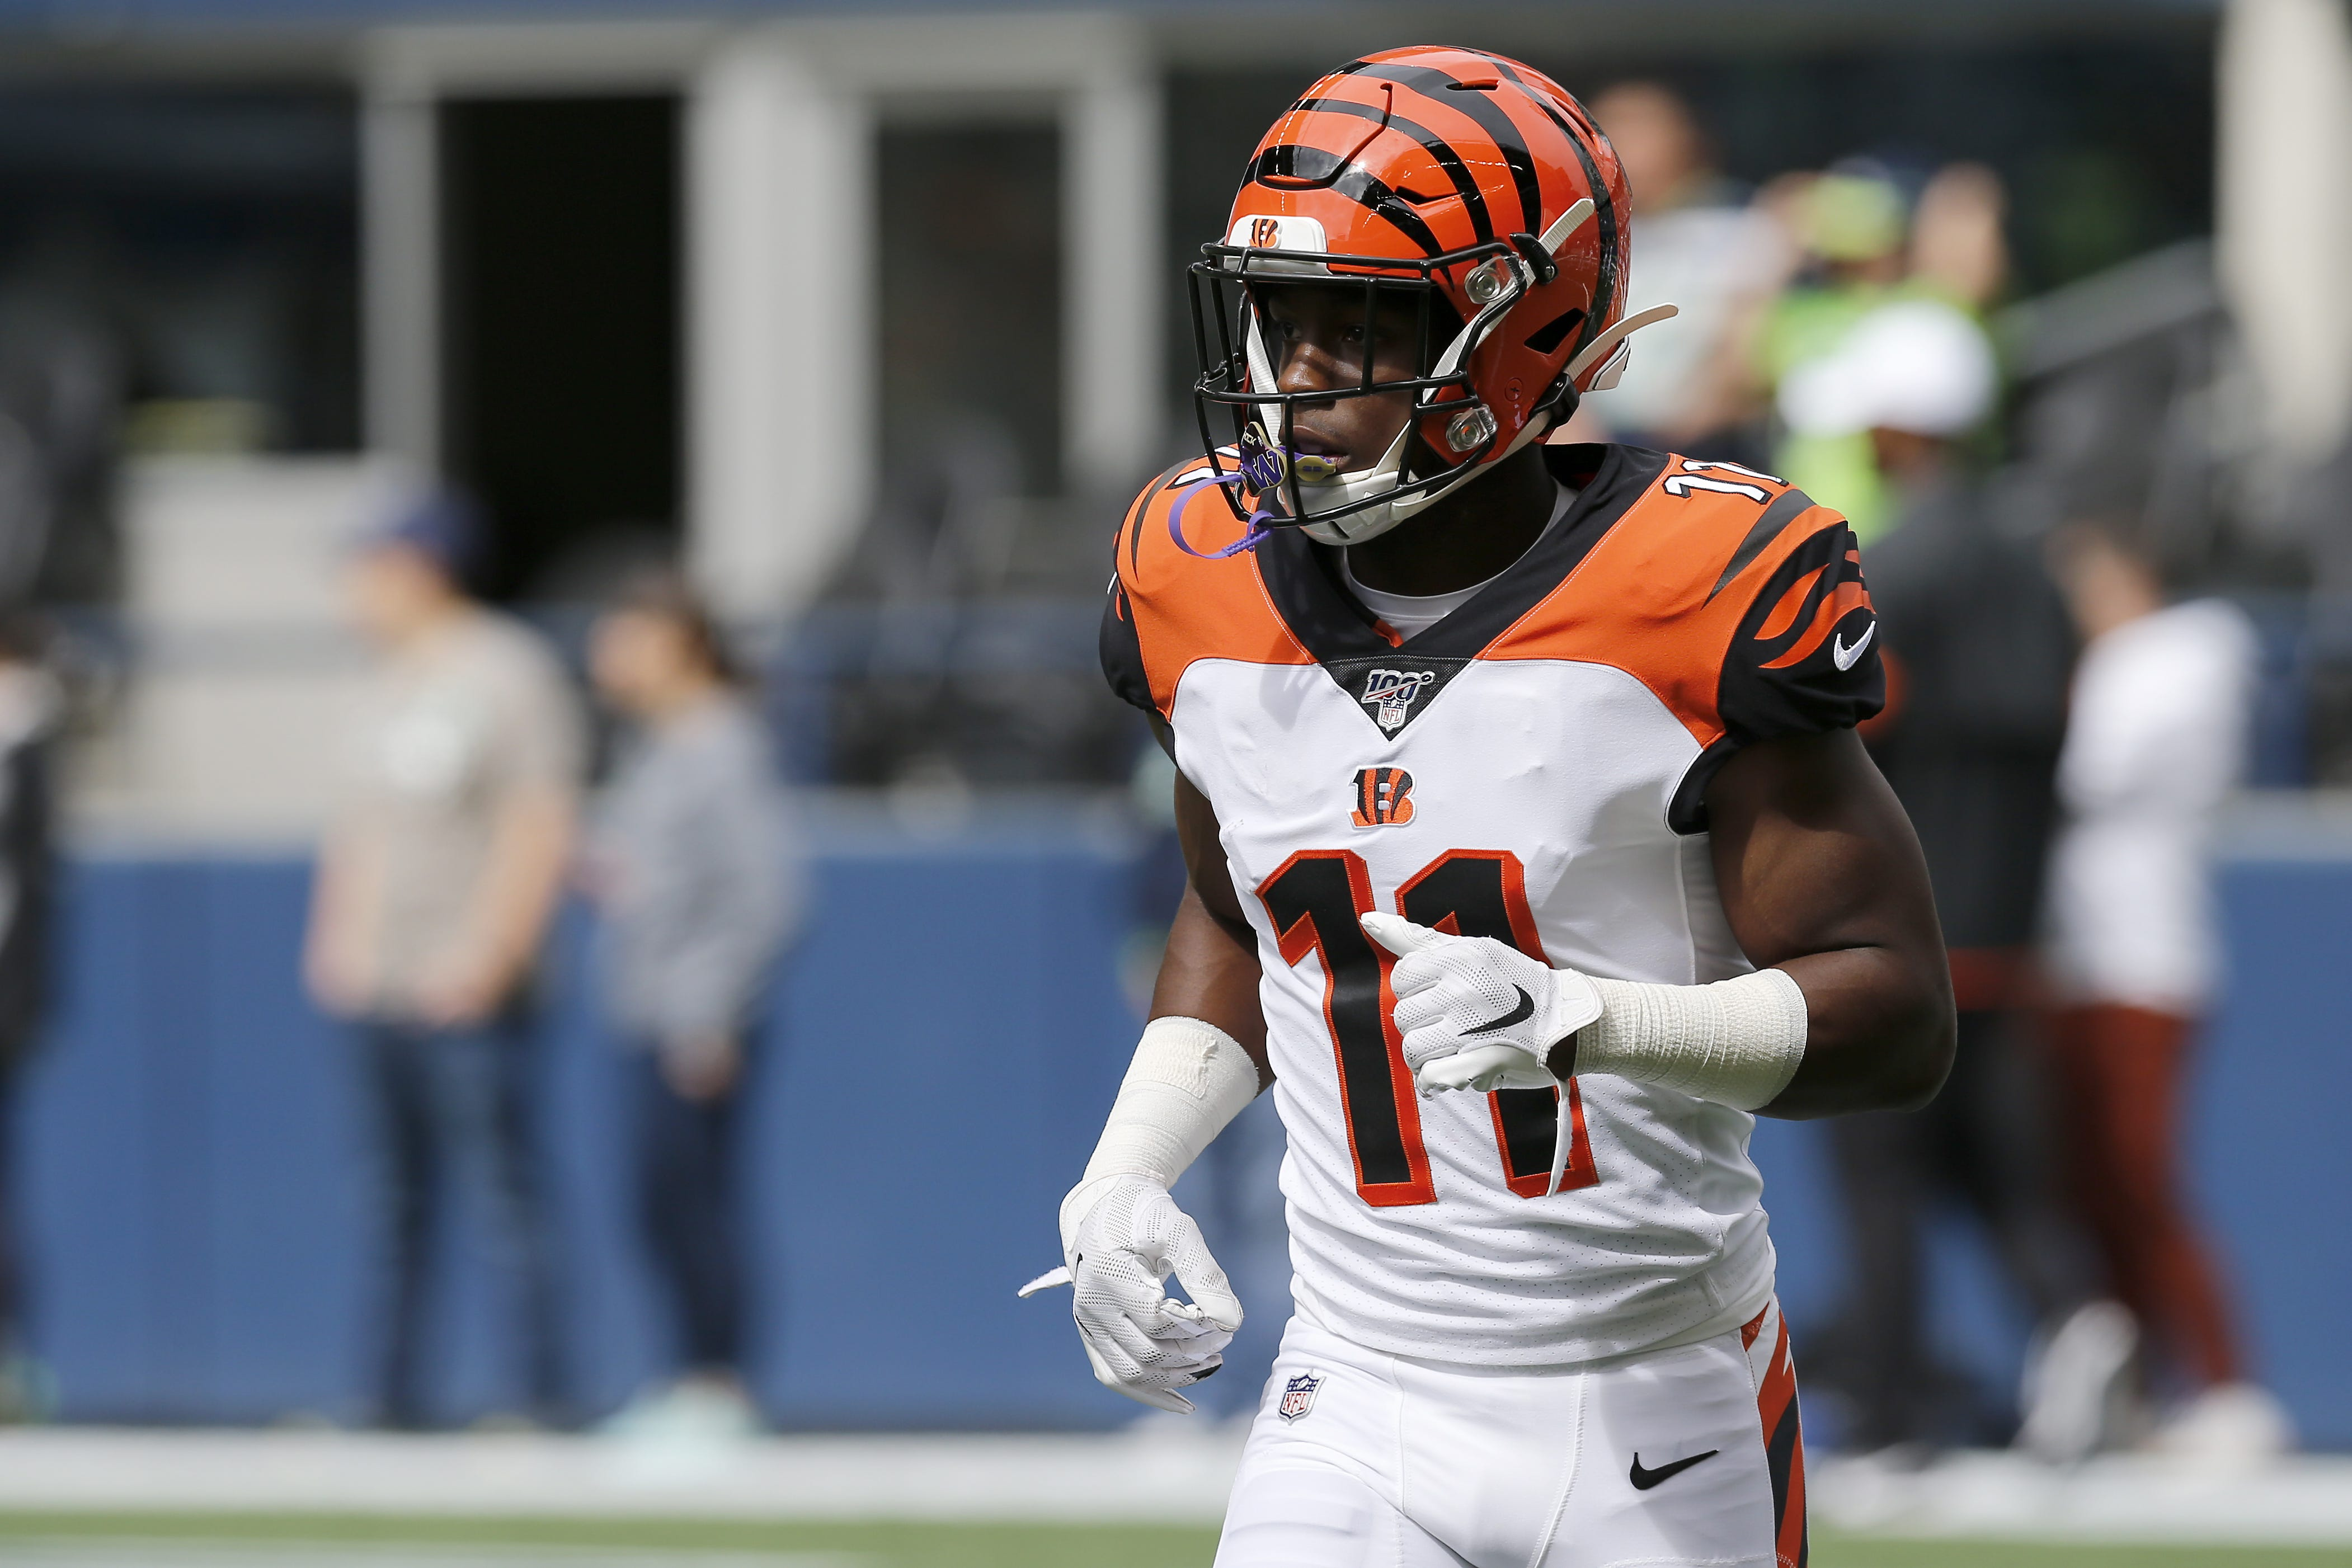 Cincinnati Bengals wide receiver John Ross leaves training camp after son tests positive for COVID-19